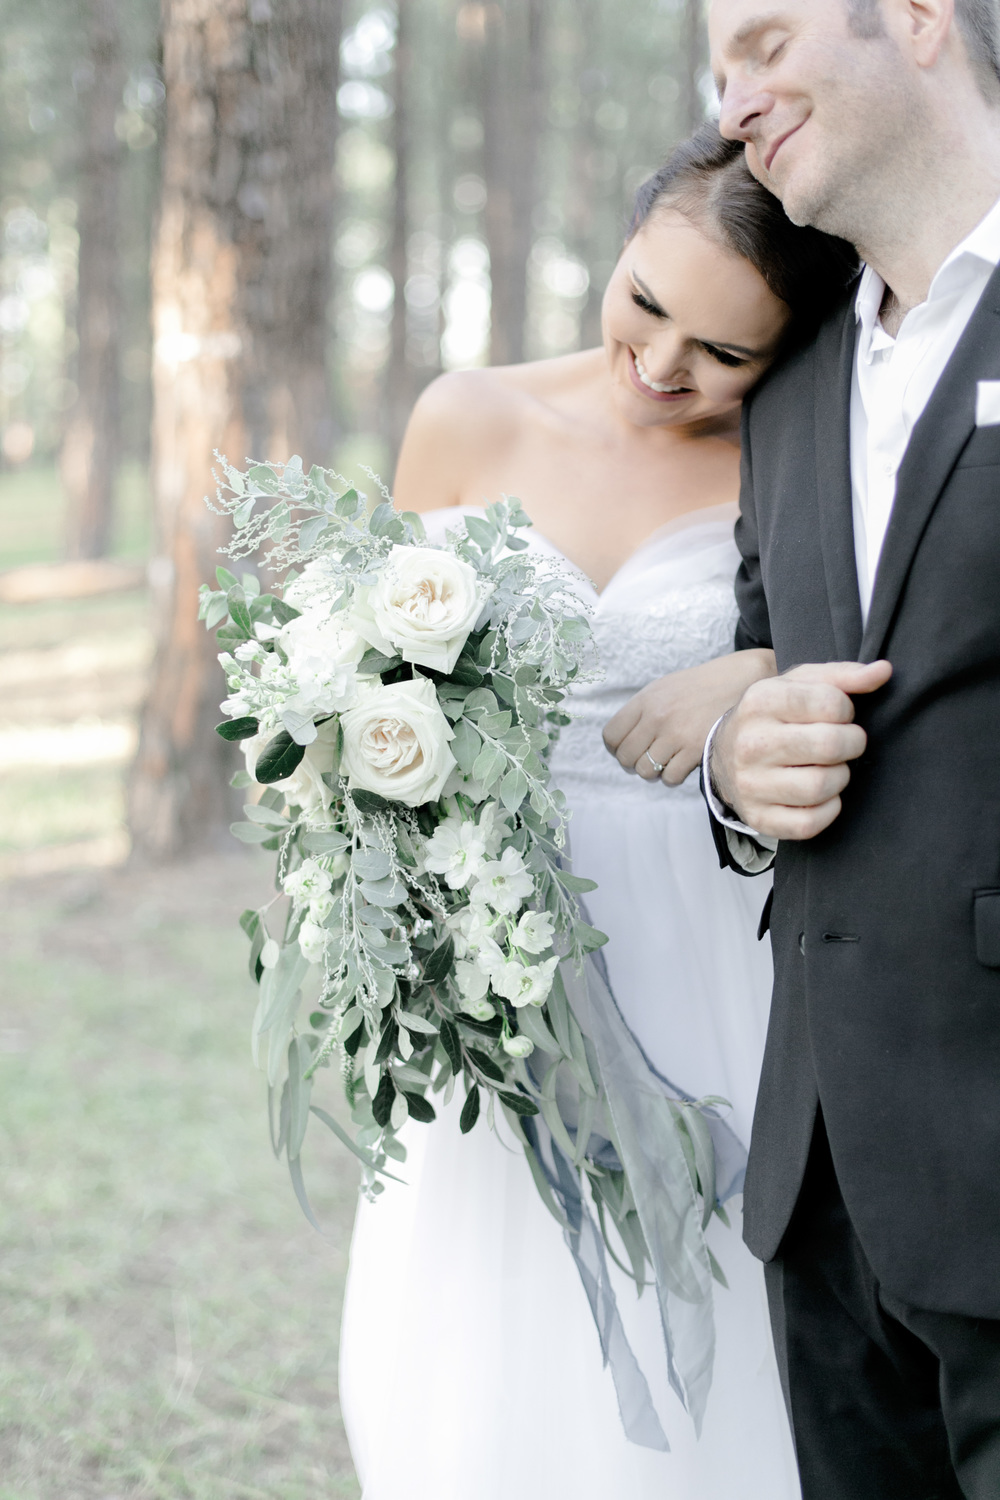 long Meadow johannesburg wedding venue photographer_054.jpg